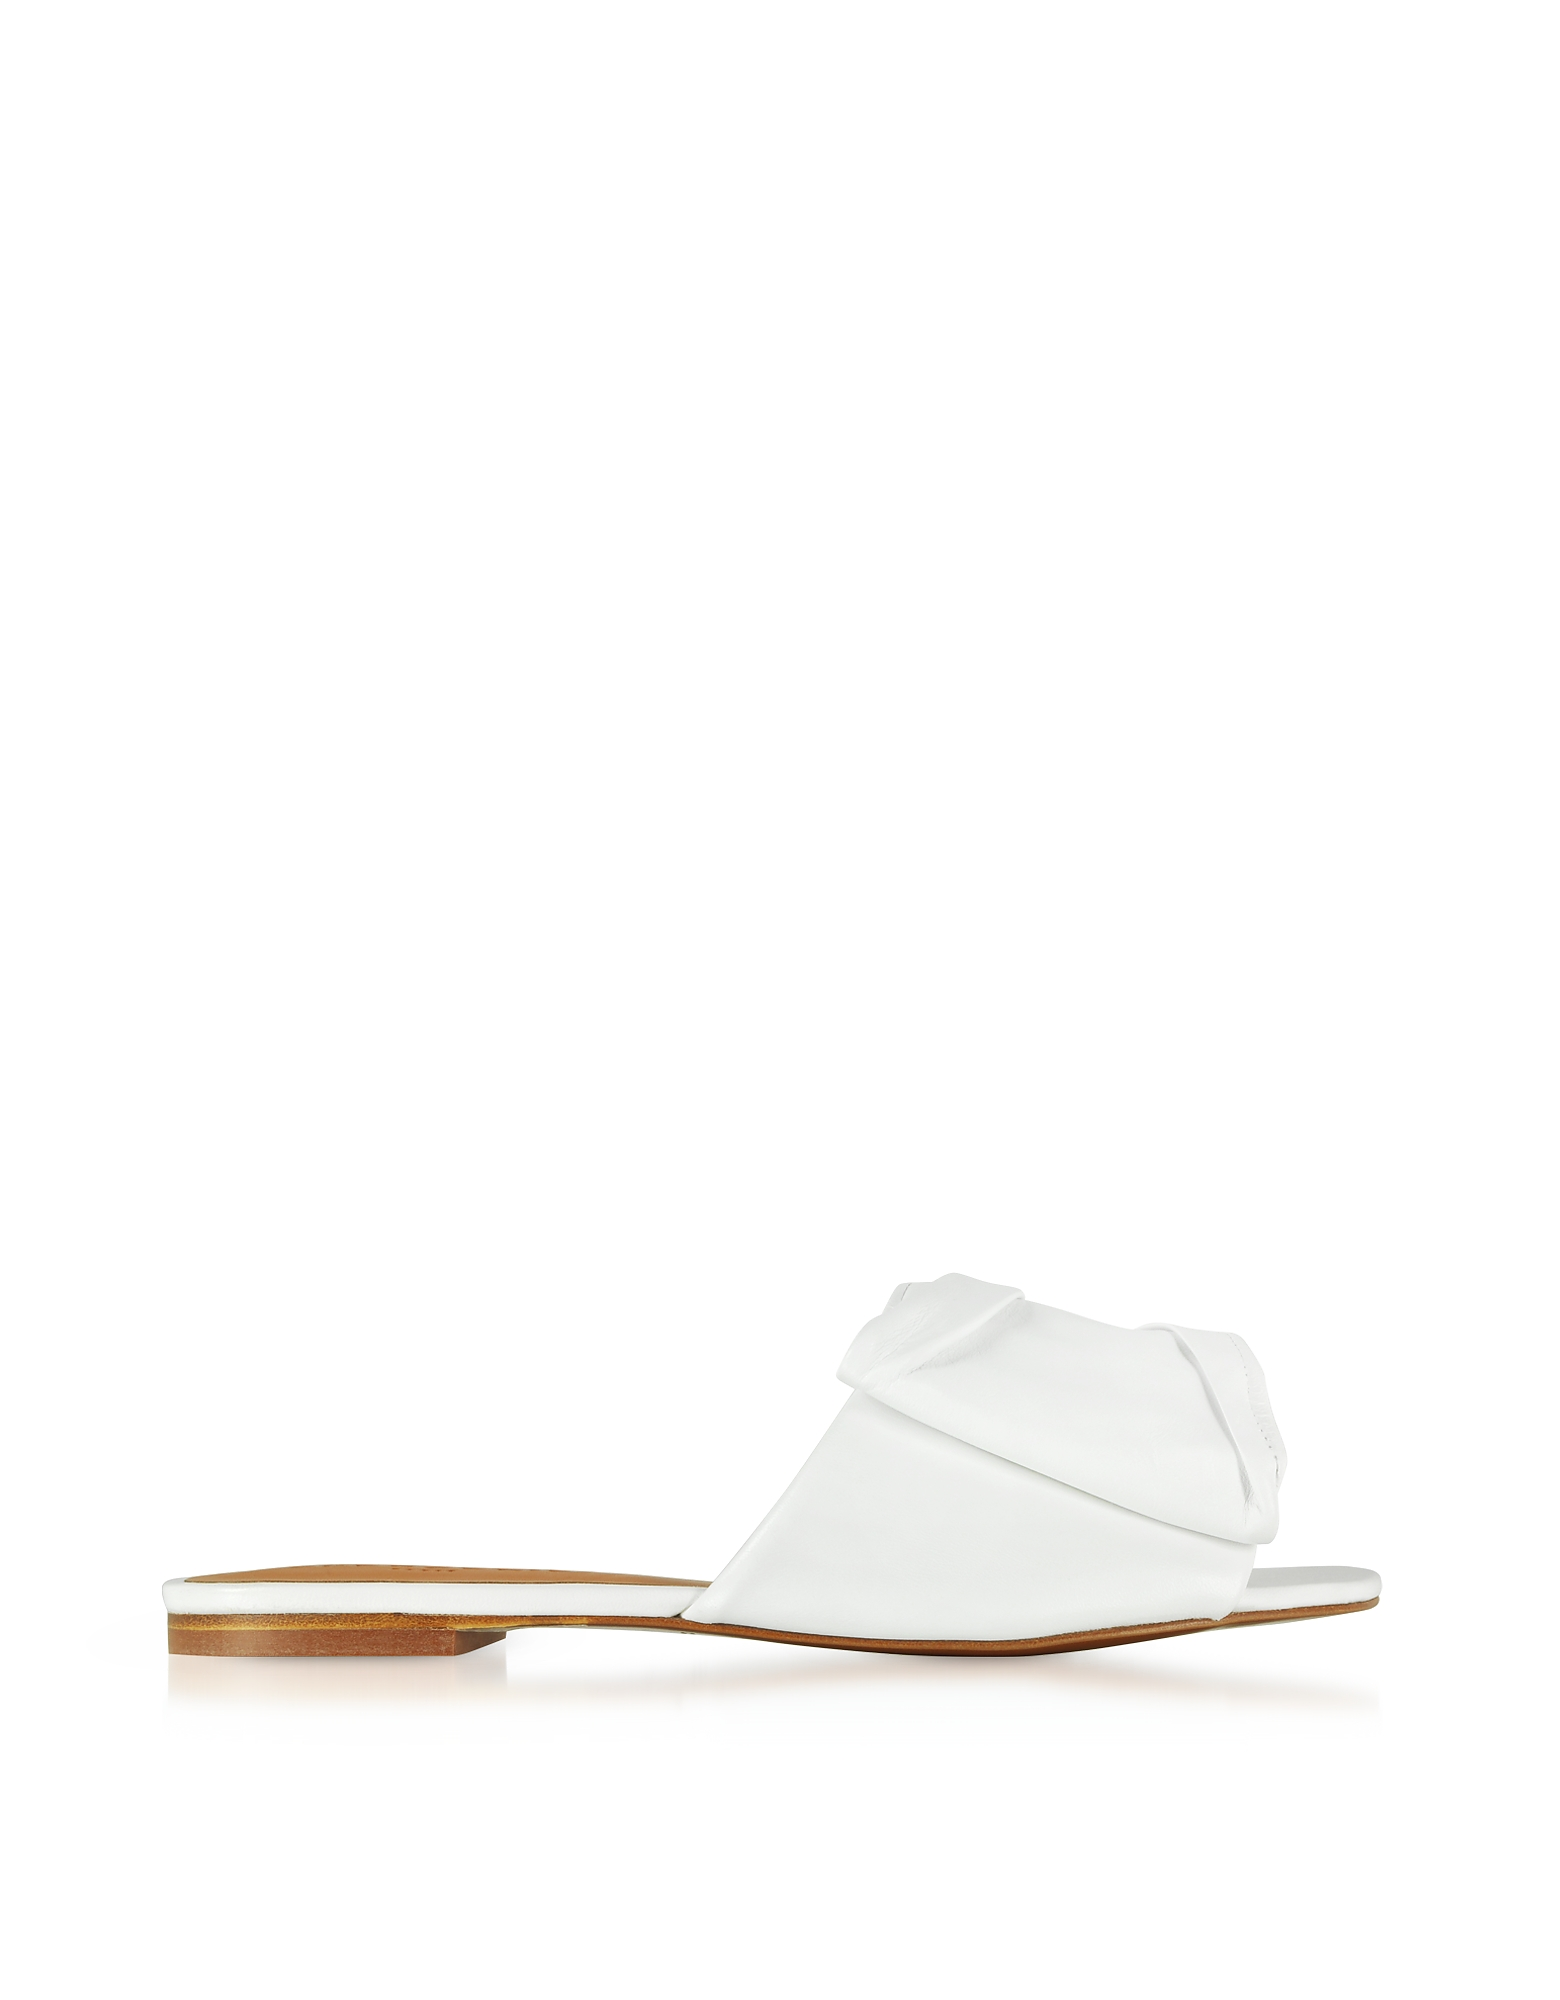 Image of Robert Clergerie Designer Shoes, Igad White Leather Flat Sandals